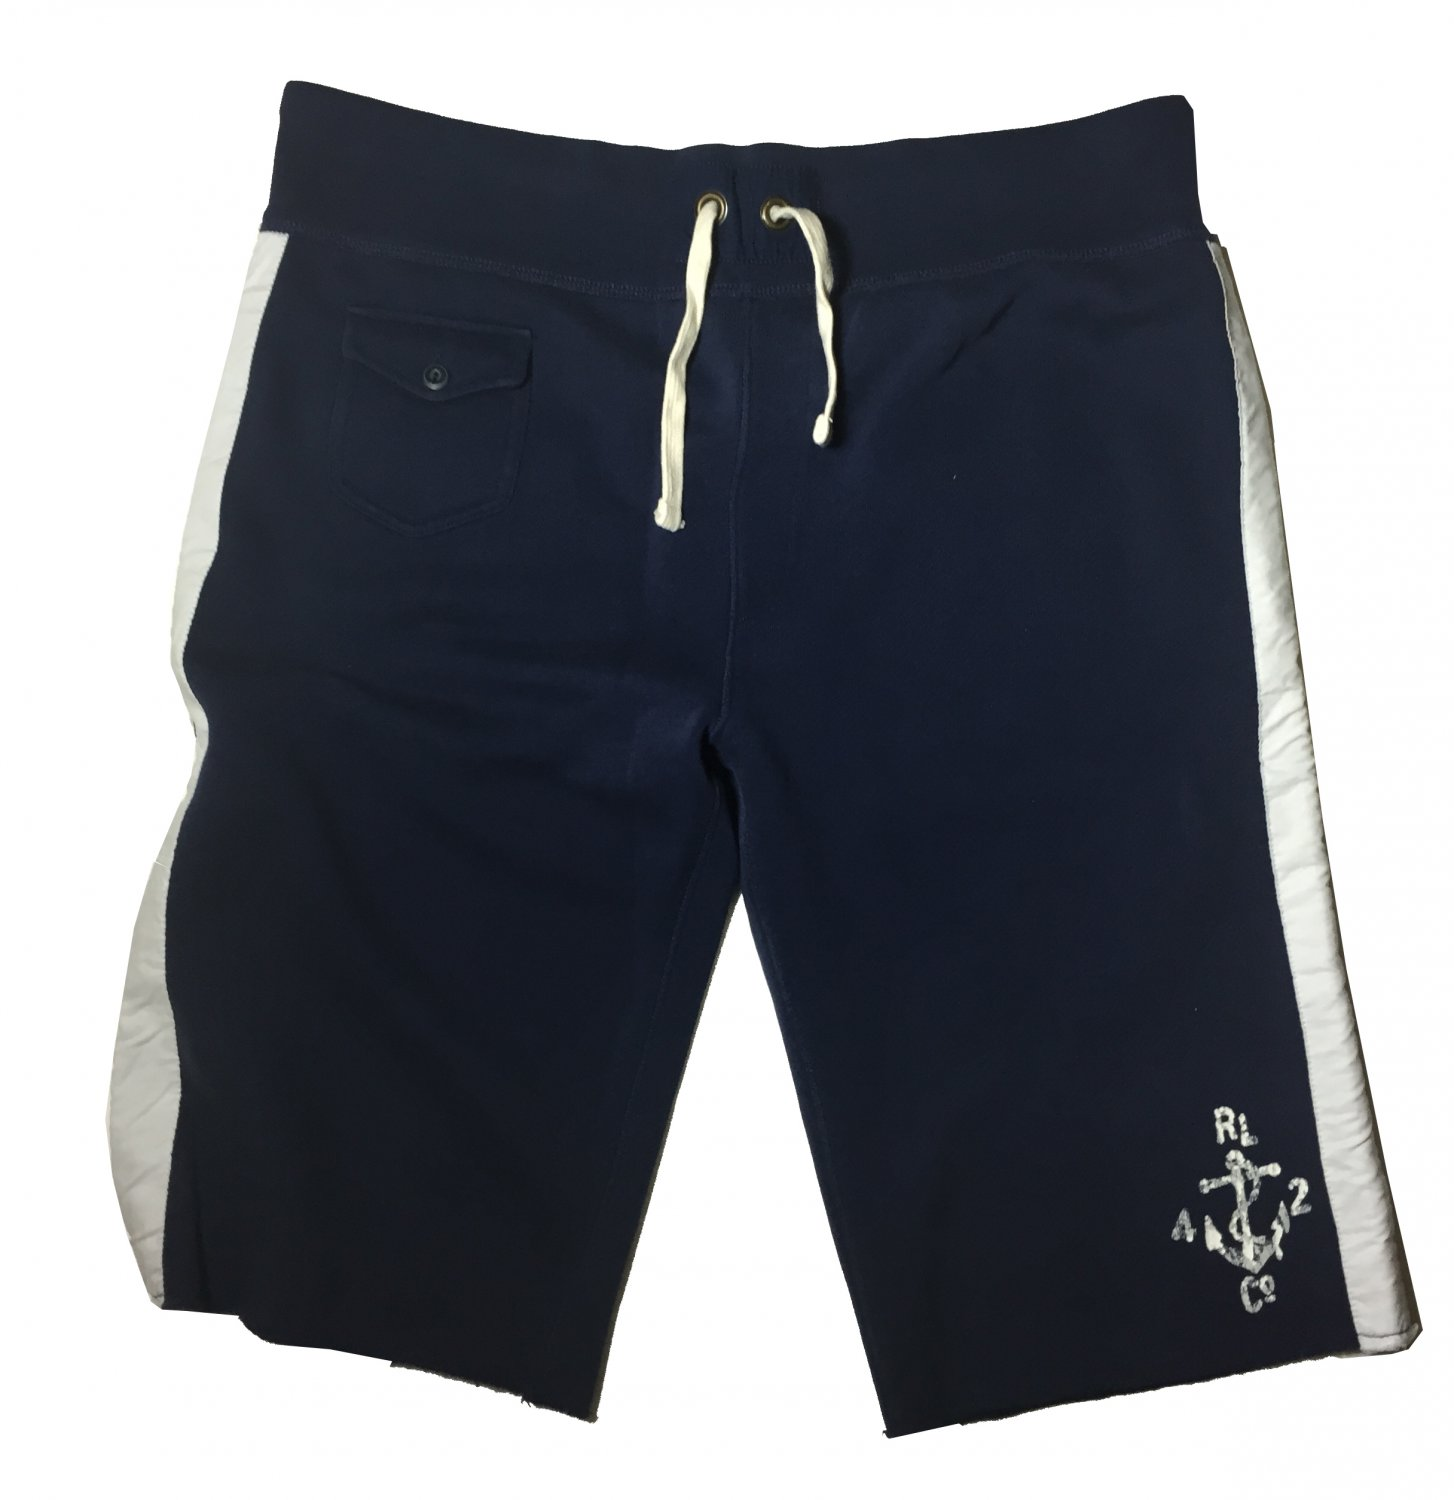 Large Polo Ralph Lauren Lounge Men's Naval Club Shorts Blue